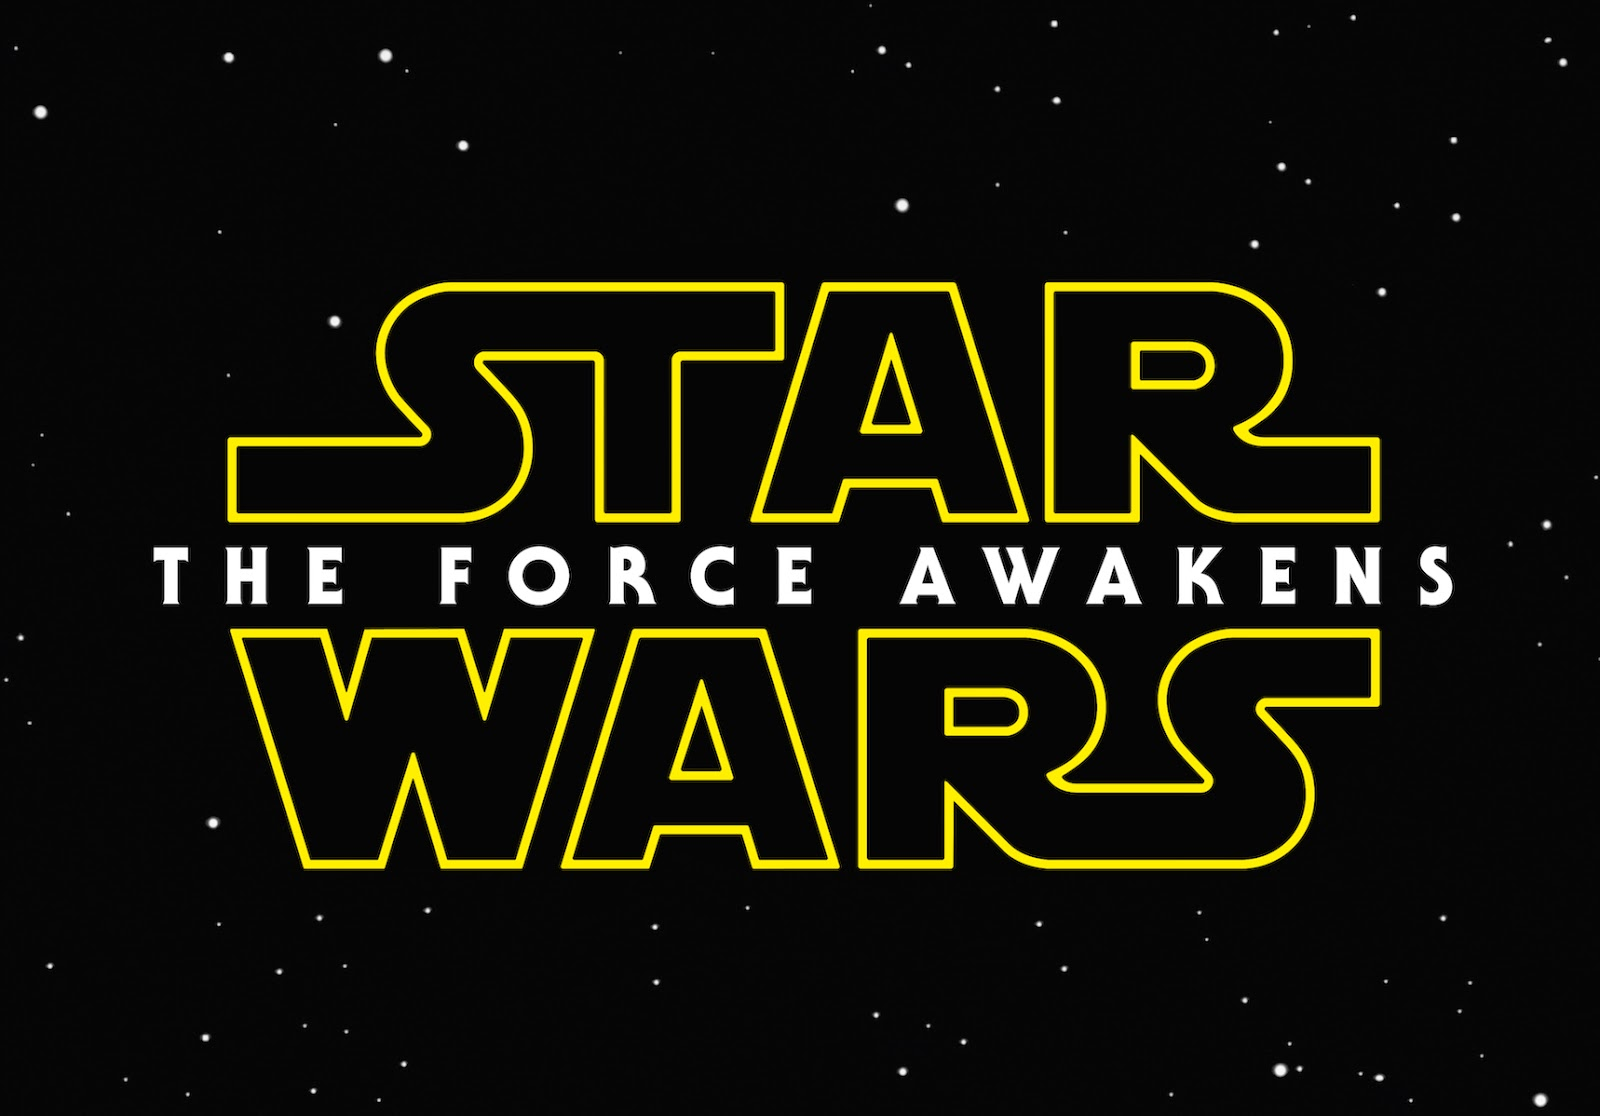 Star Wars: The Force Awakens - First Look